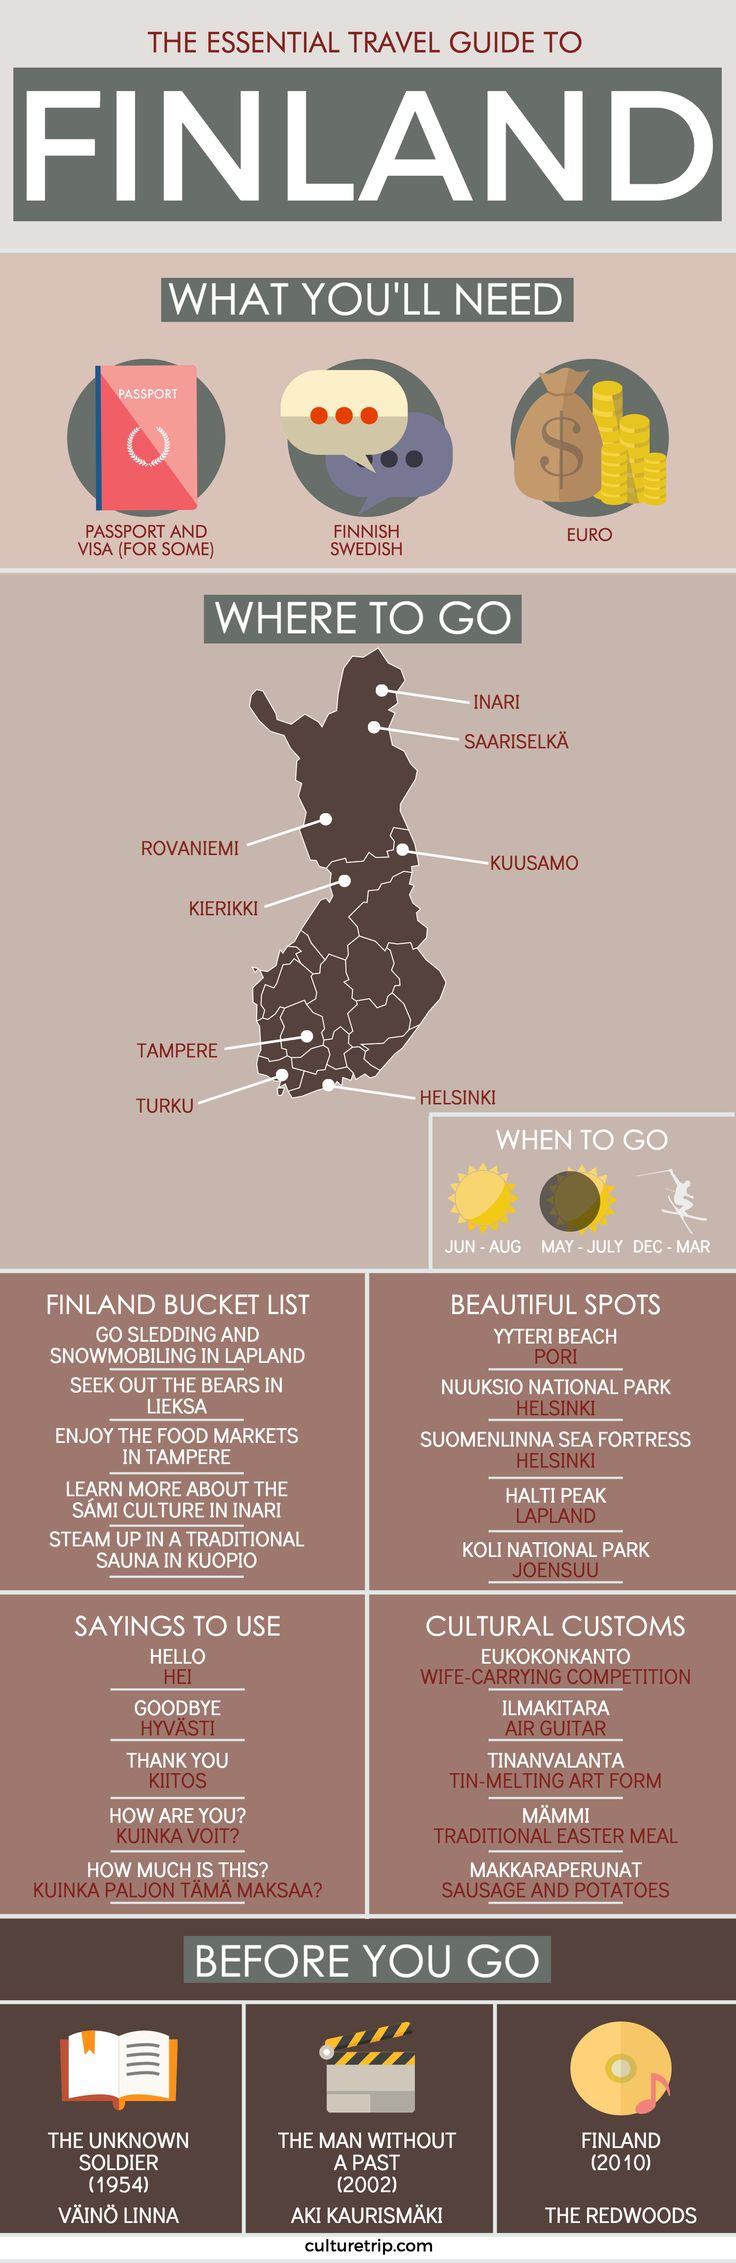 Finland Travel Guide by the Culture Trip.